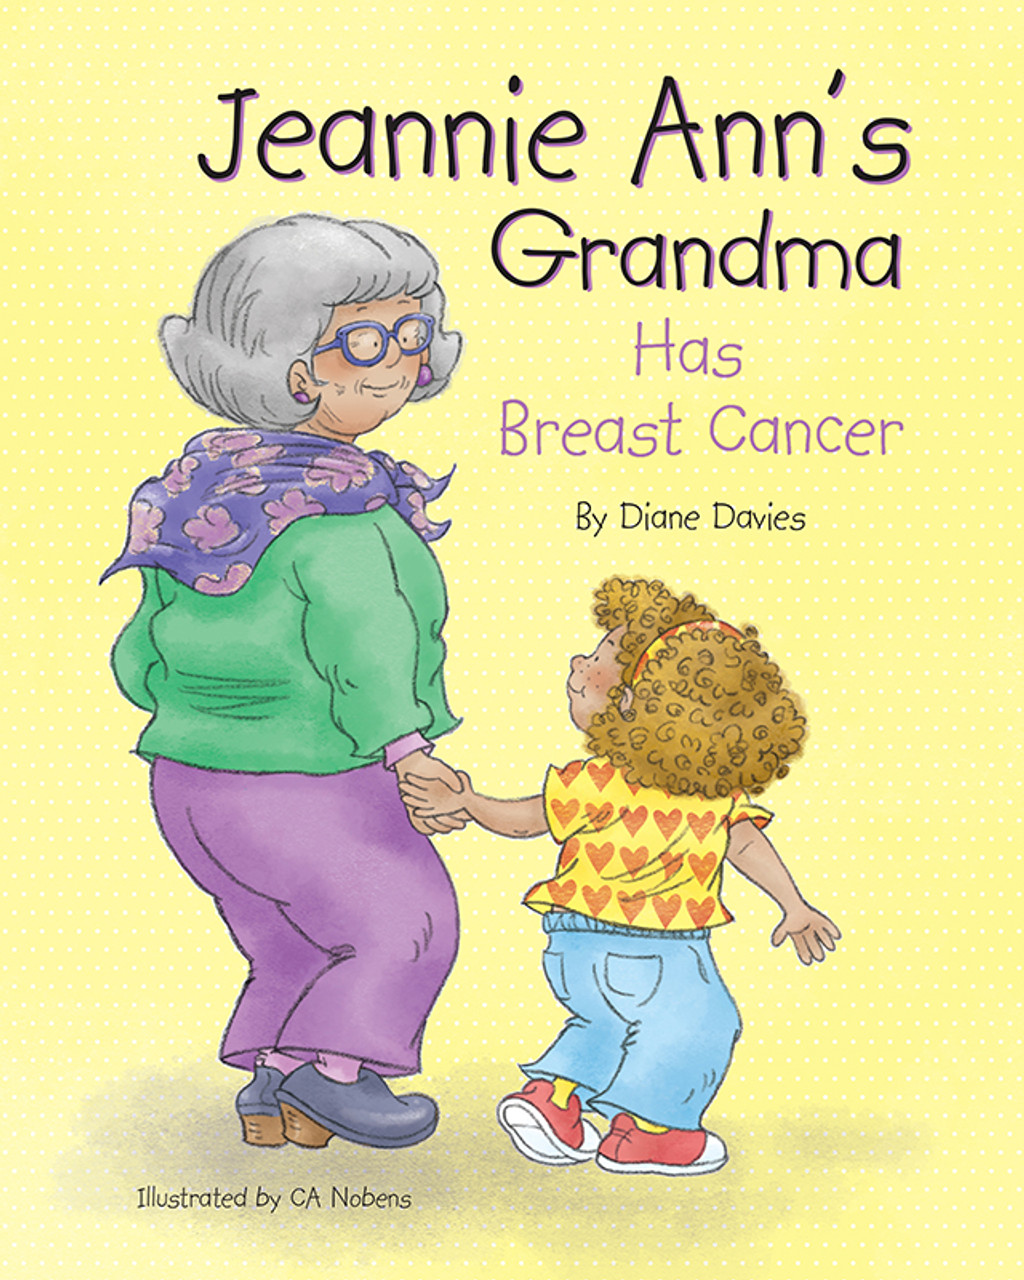 Jeannie Ann's Grandma Has Breast Cancer